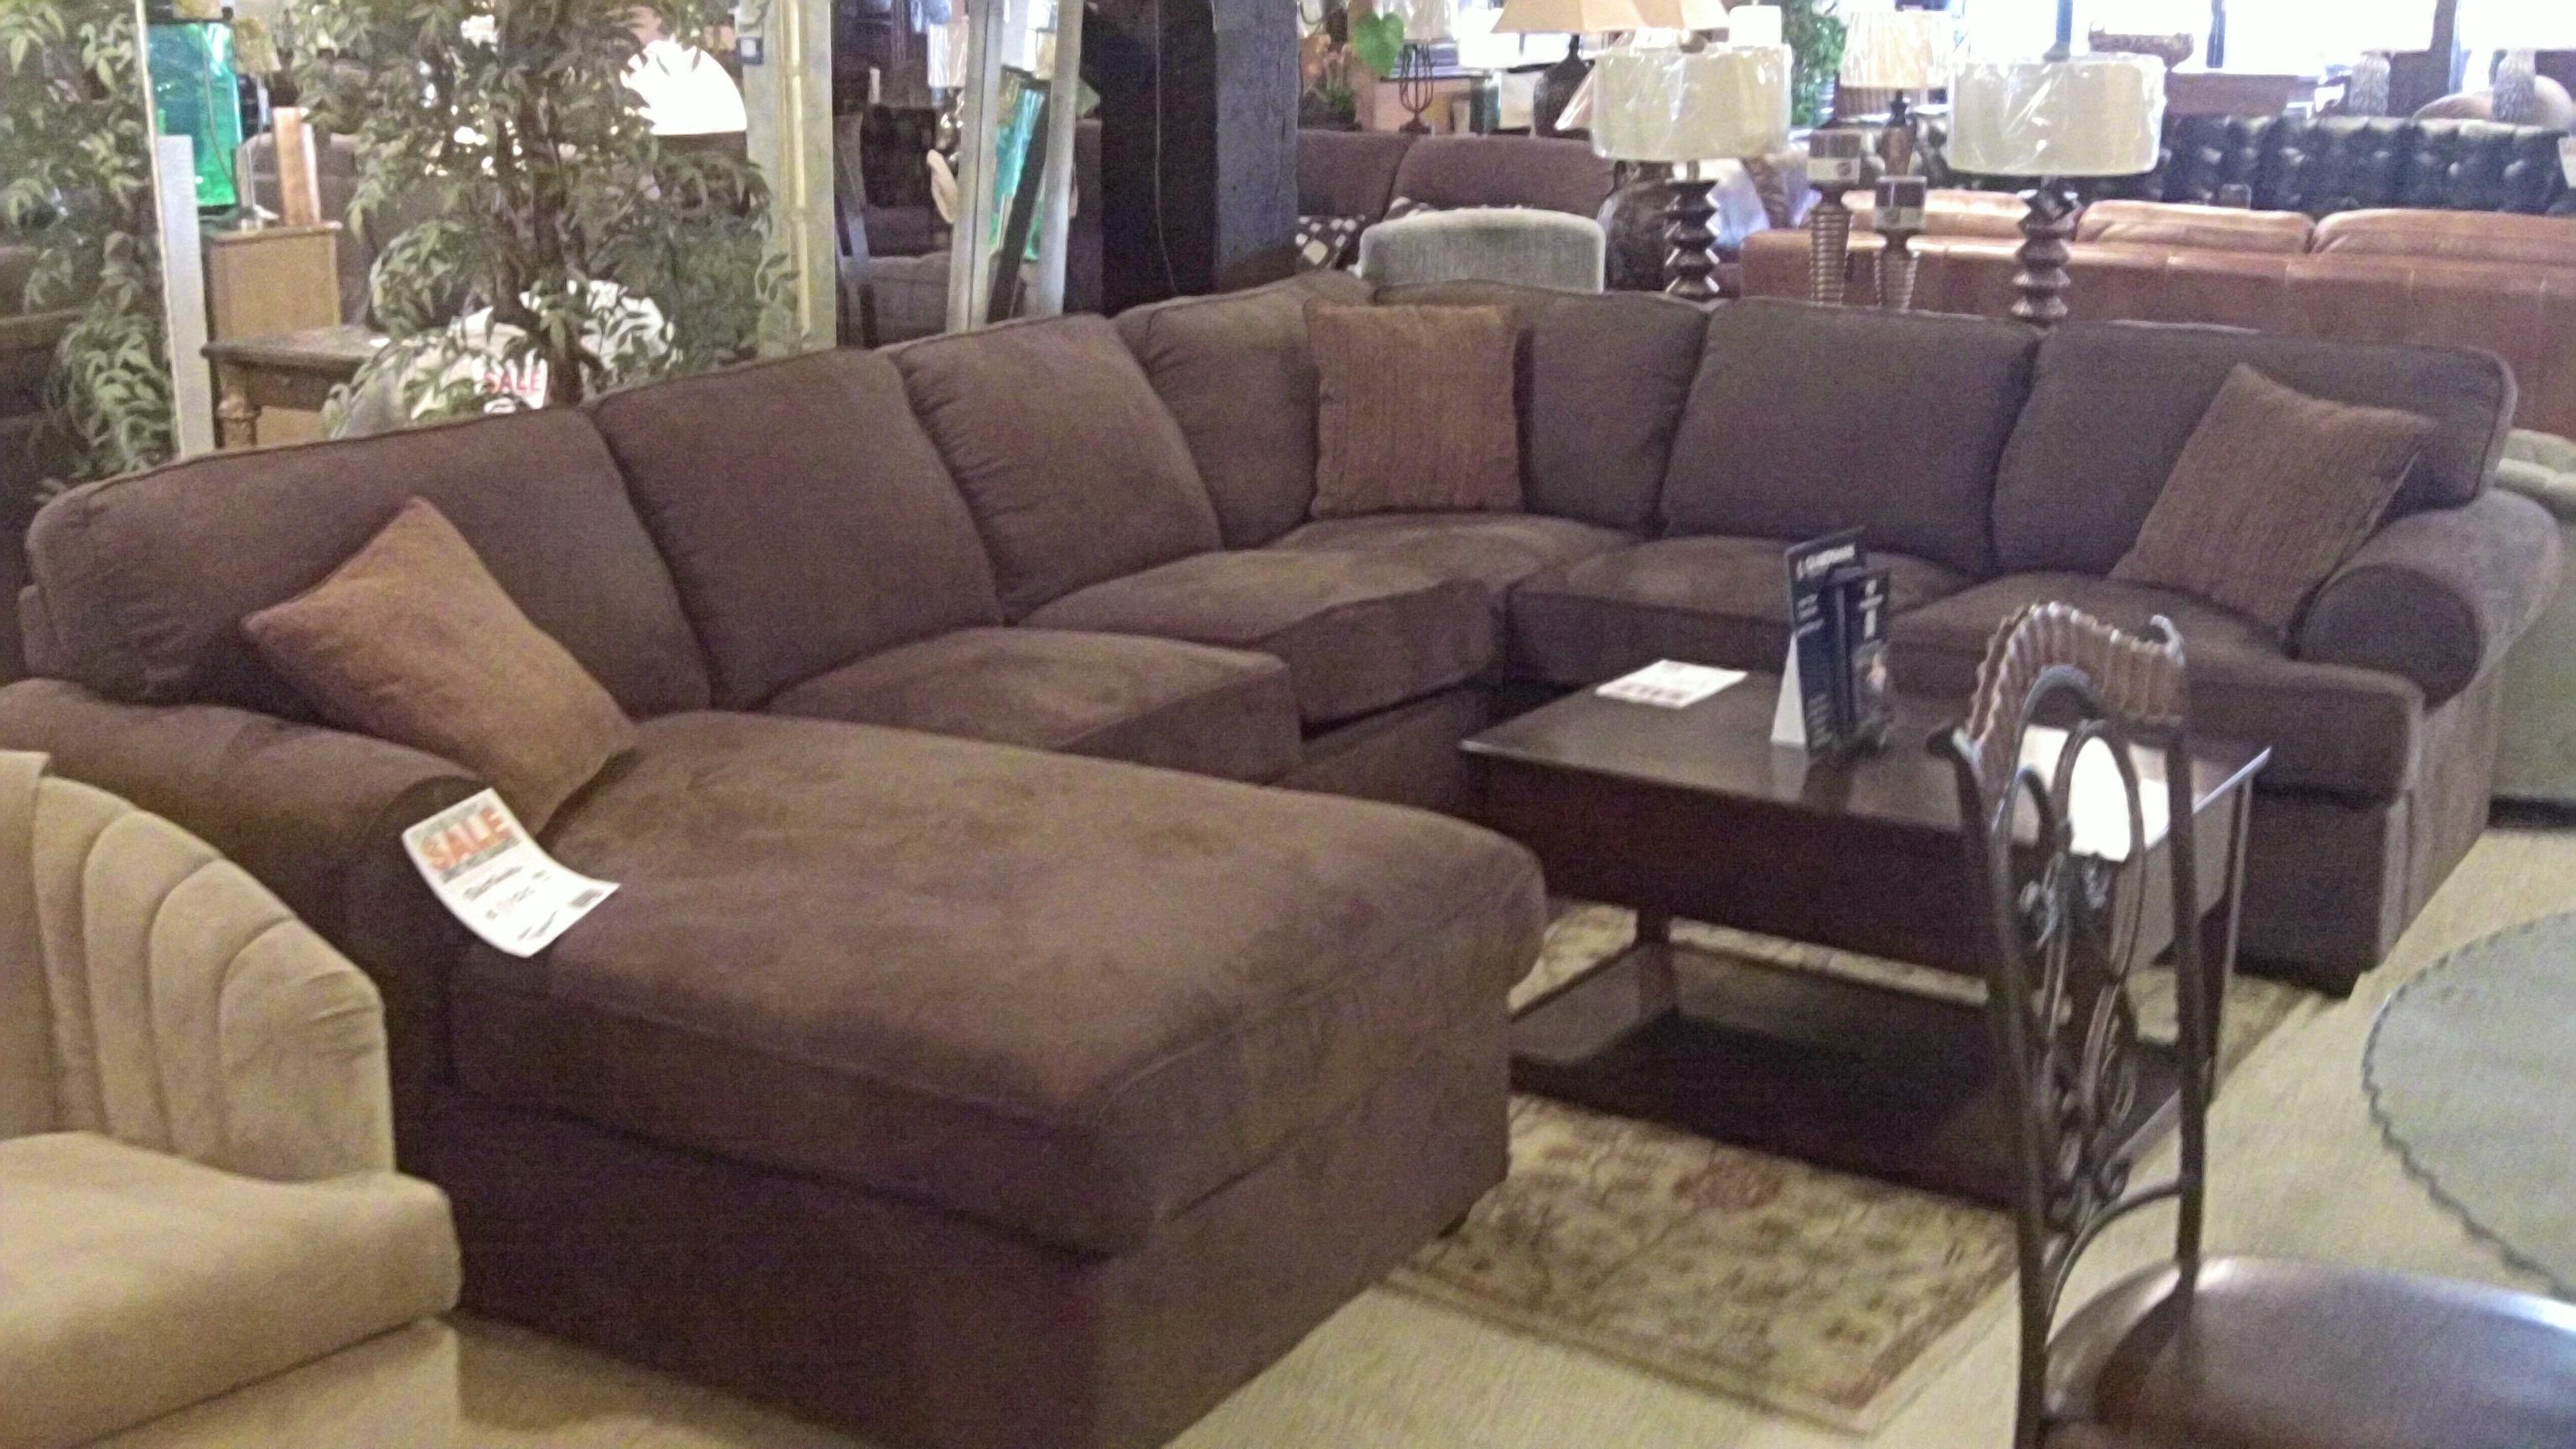 Furniture: Nice Extra Large Sectional Sofa For Large Living Room With Sectional Sofa With Oversized Ottoman (Image 8 of 20)